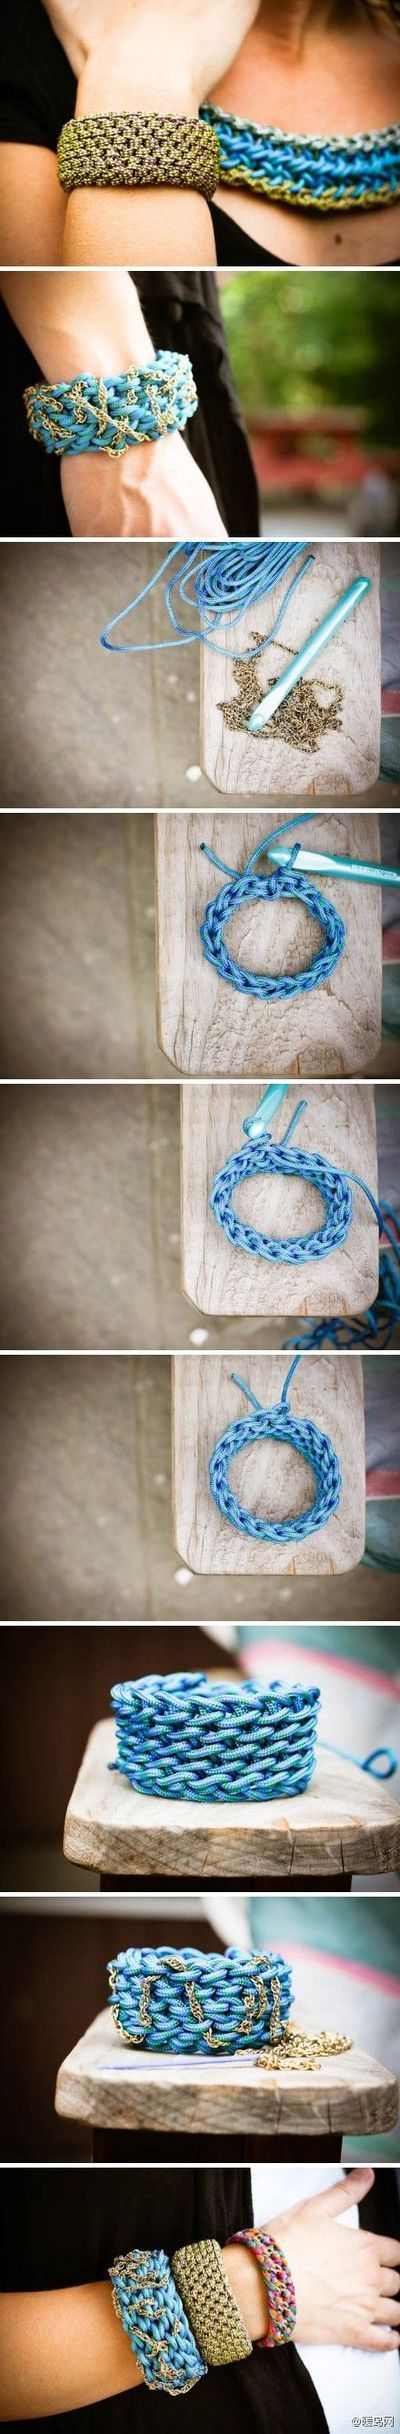 Crochet bracelet. Great thing to do with novelty yarn